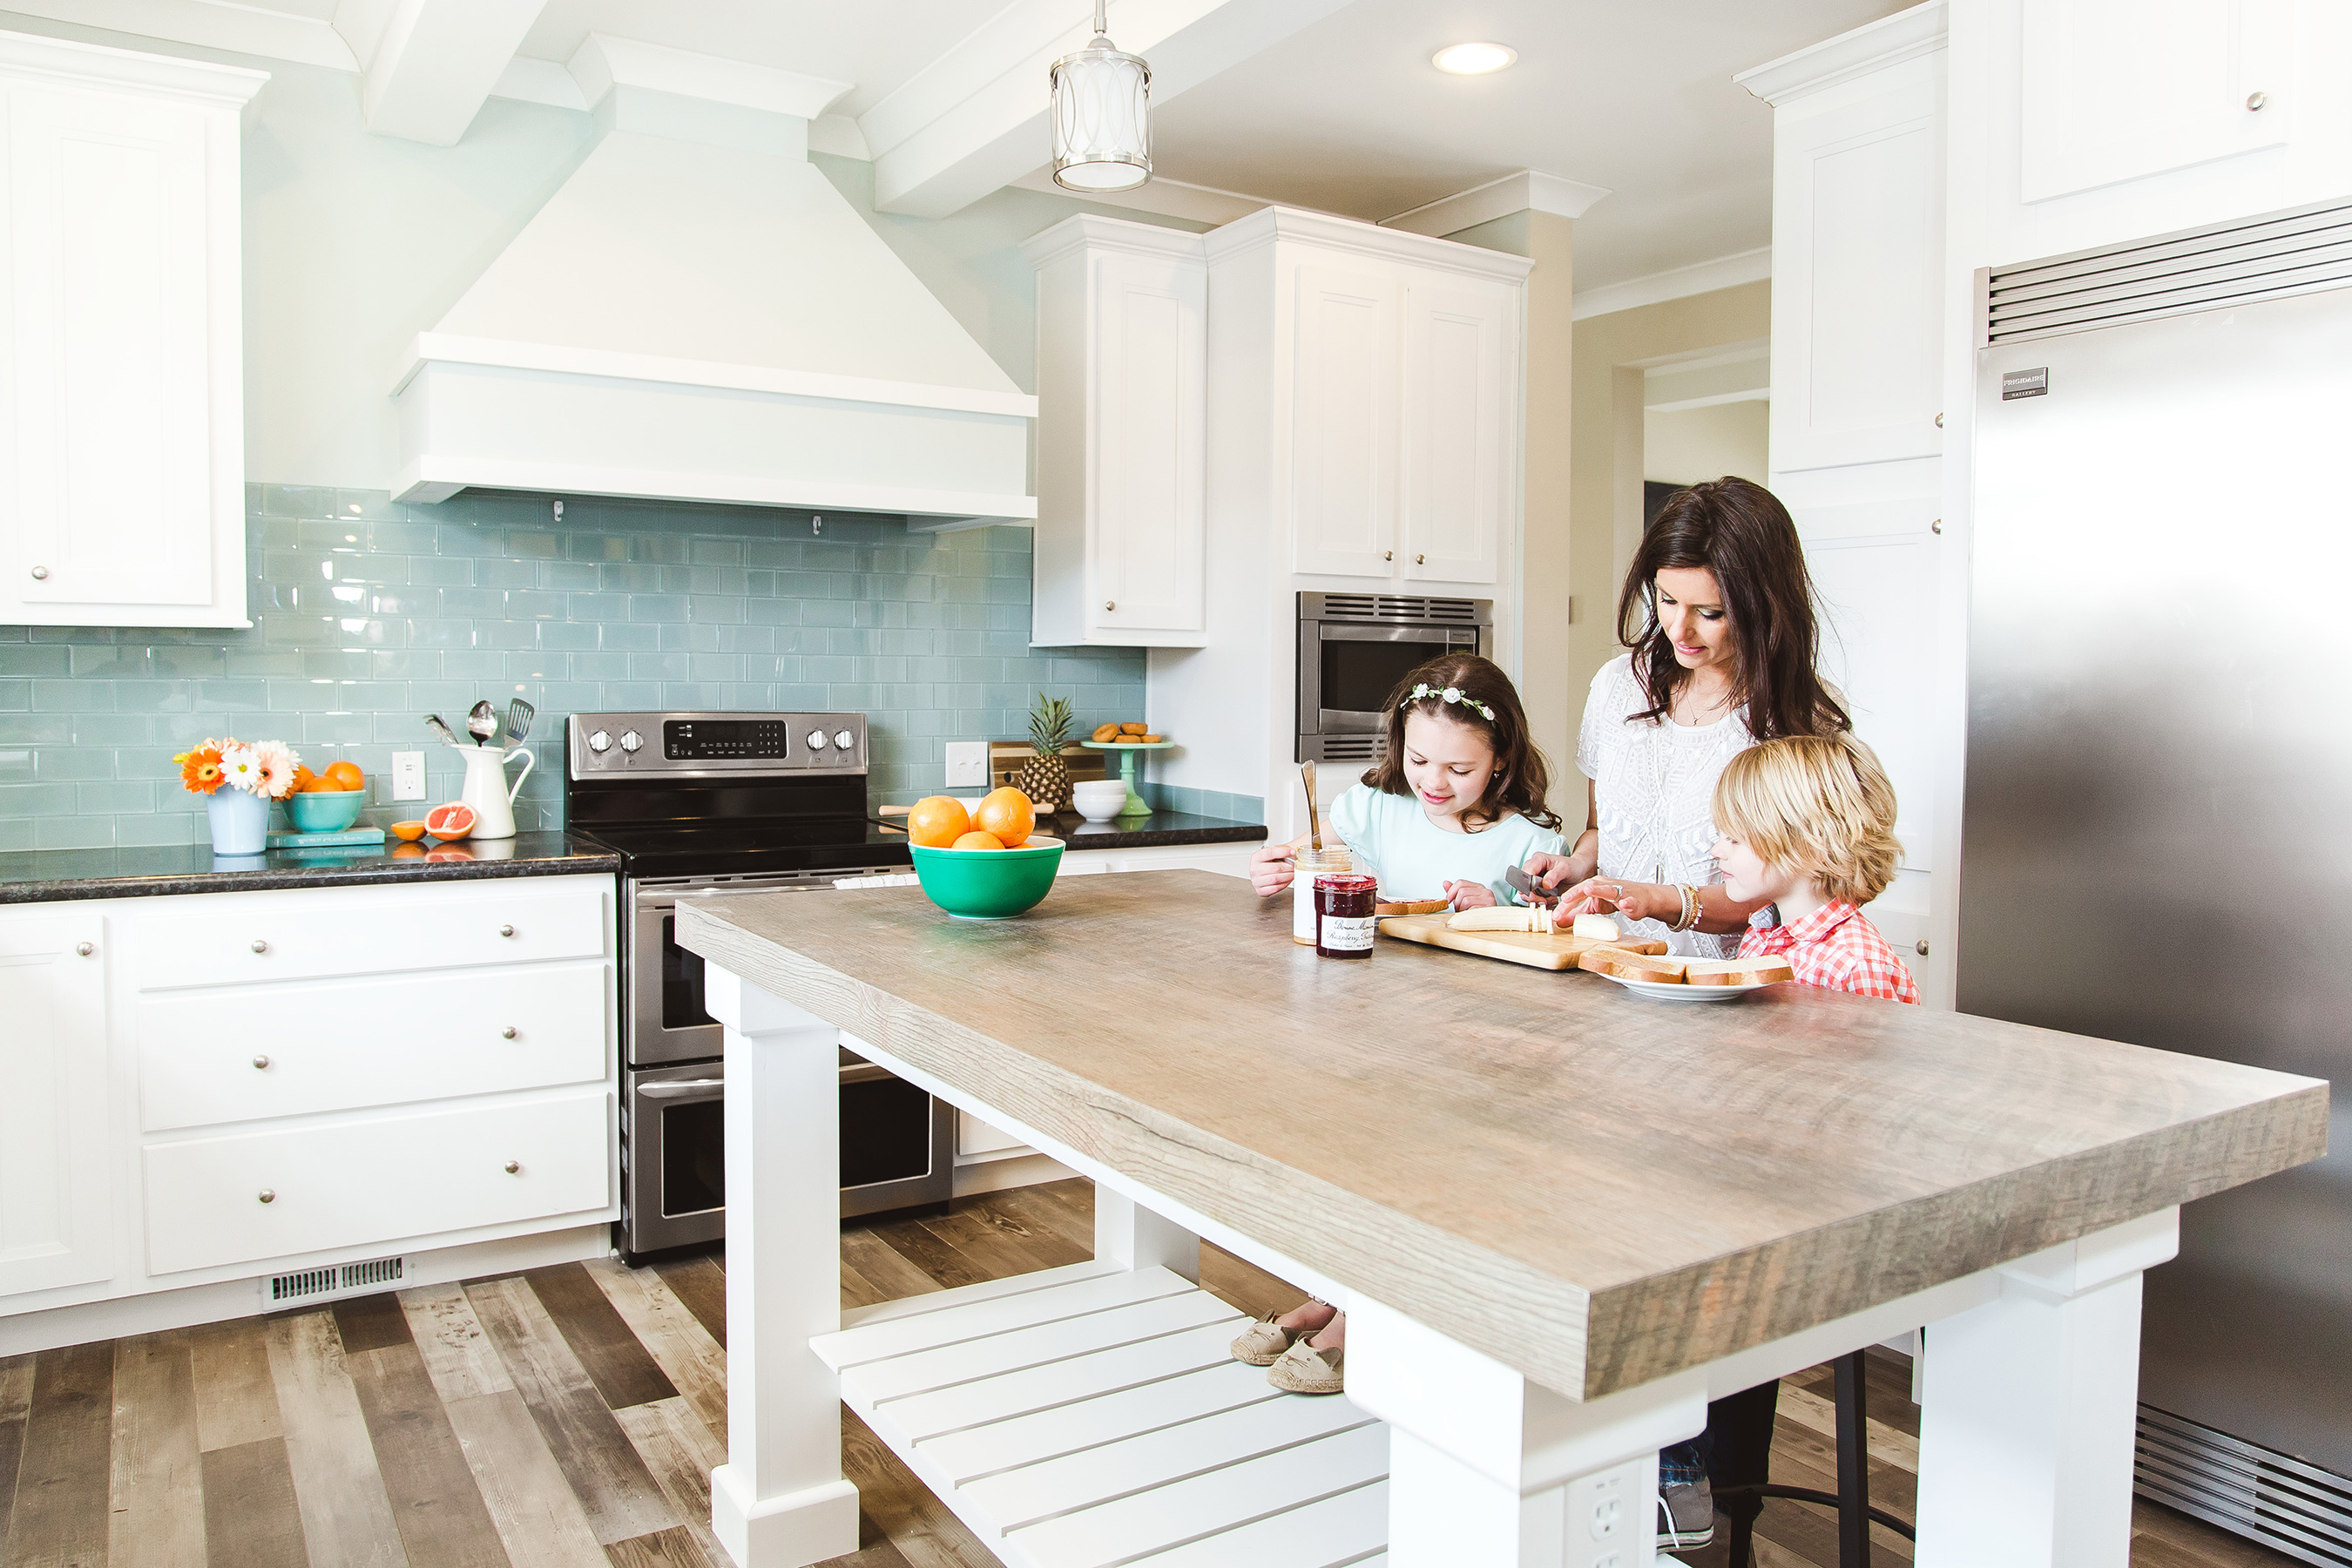 Clayton Homes provides many of the things millennials want in their home: from energy efficiency to an affordable price.